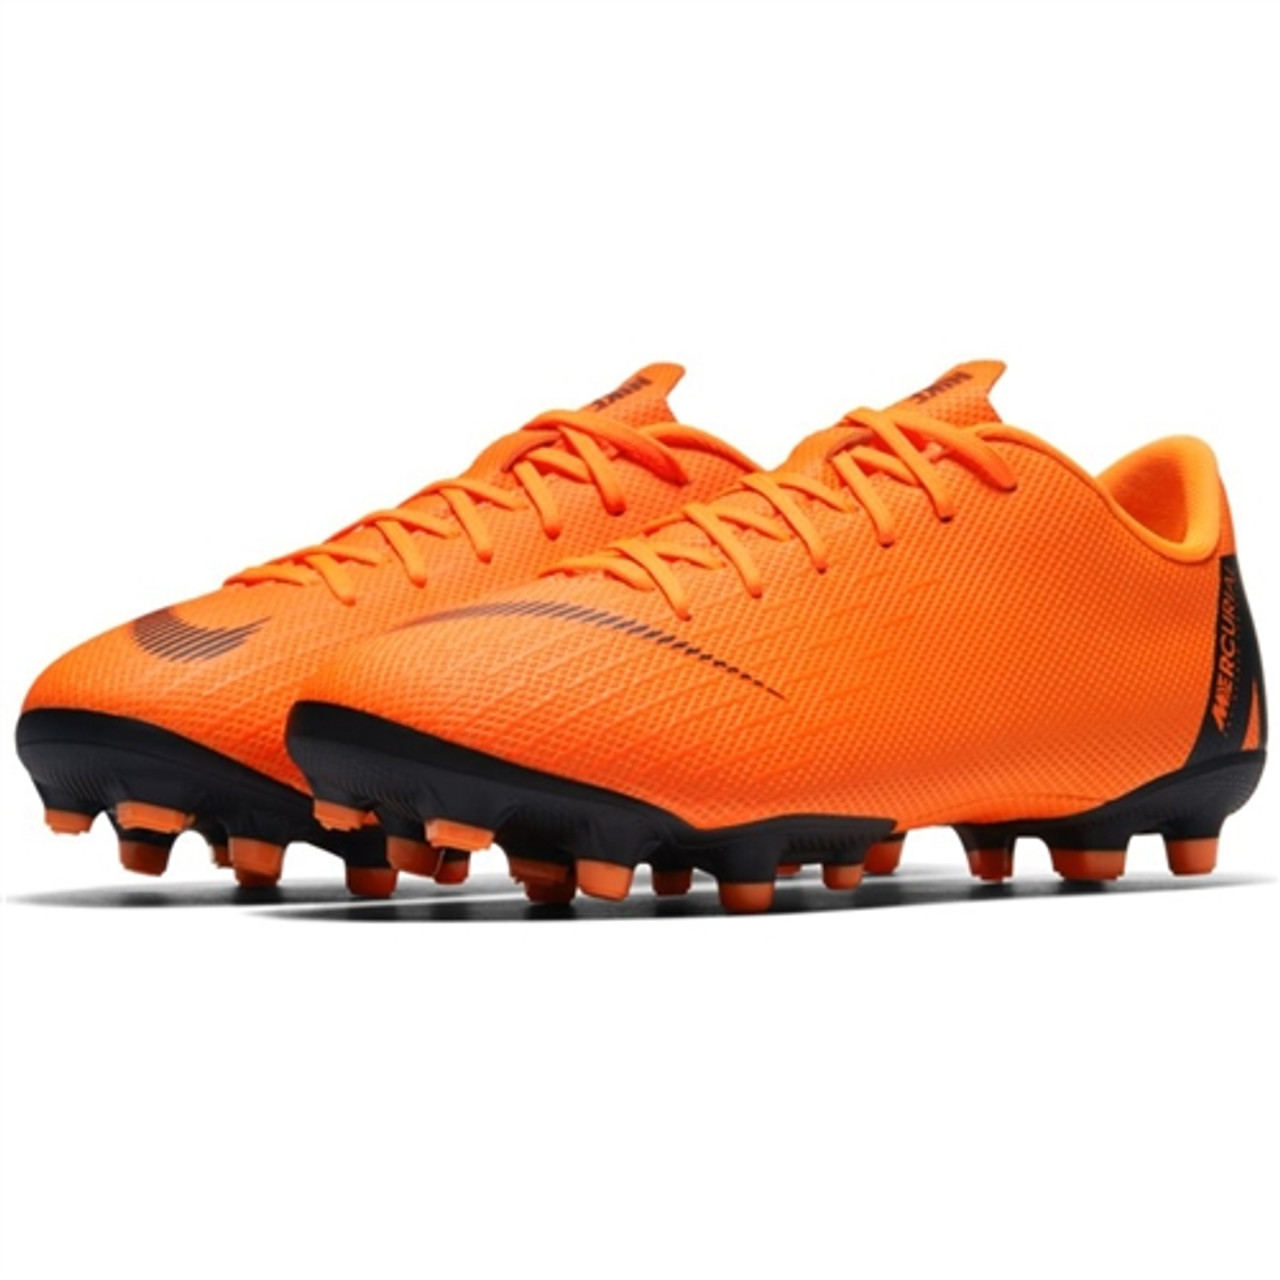 Nike Jr. Vapor 12 Academy GS MG - Total Orange/Black (3318)